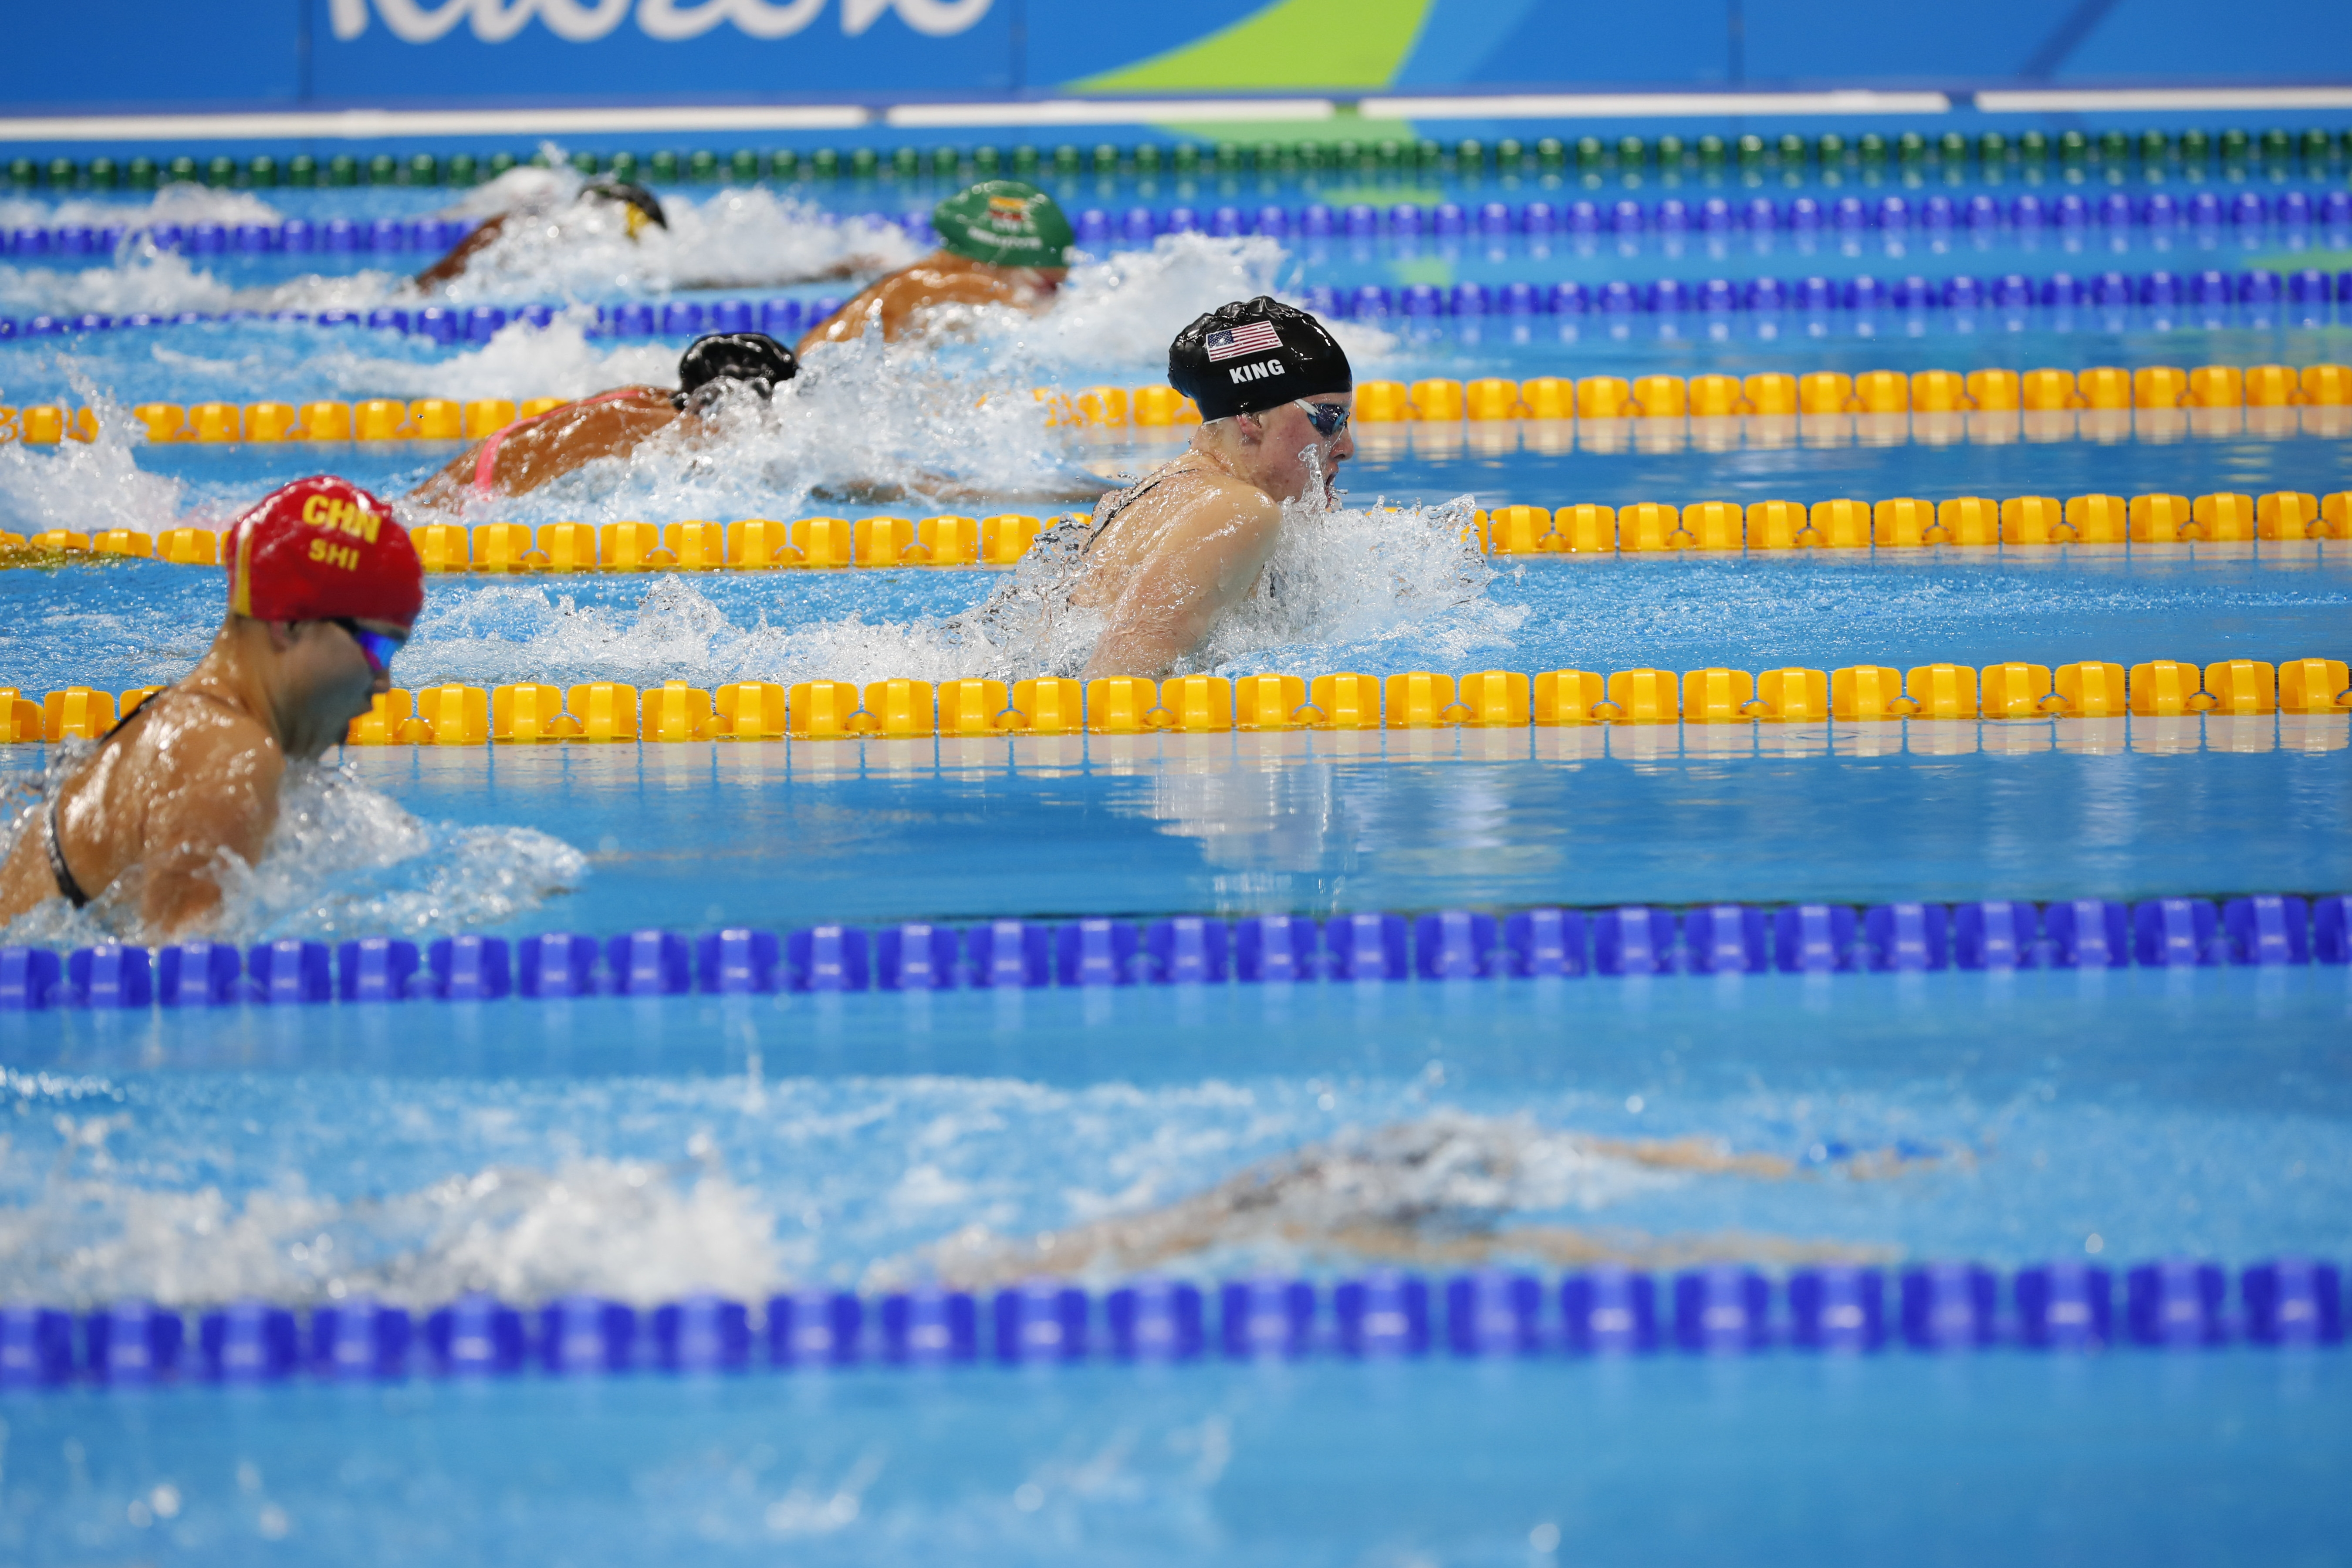 Lilly King, right, competes in the women's 100-meter breaststroke final during the 2016 Summer Olympics.